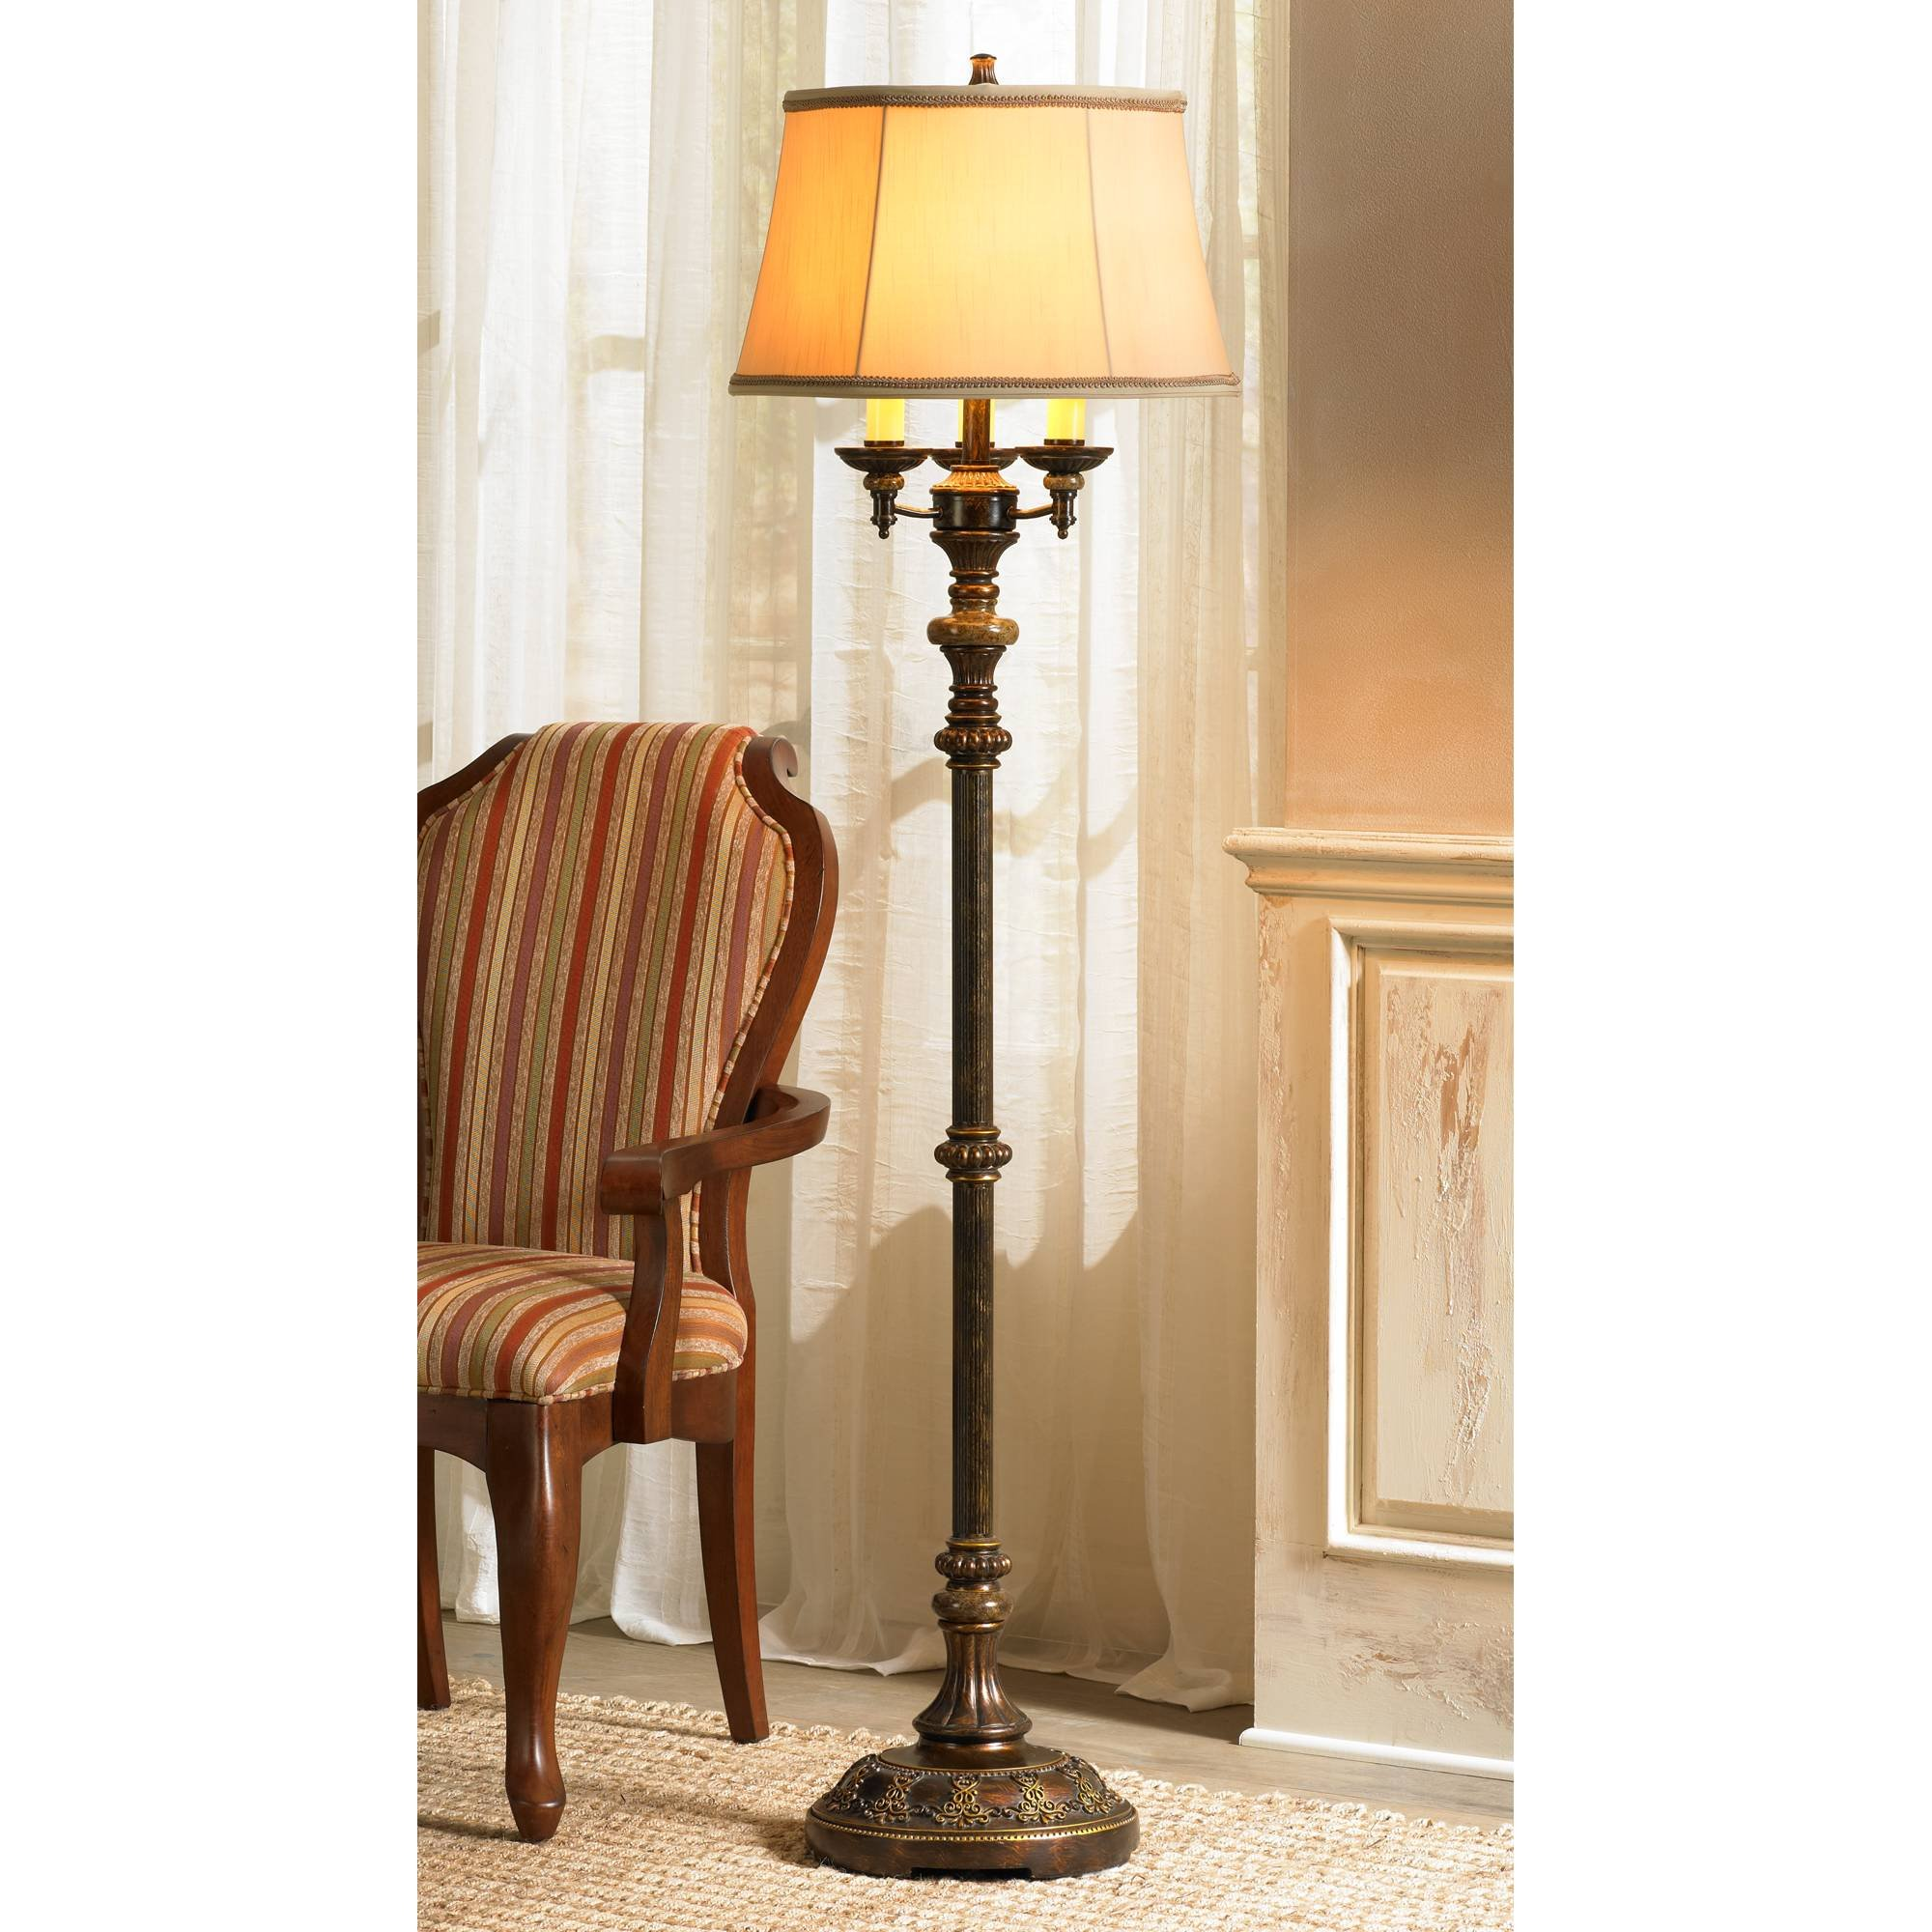 Traditional Tall Standing Floor Lamp Candelabra Style 4-Light Italian Bronze Gold Bell Shade Decor for Living Room Reading House Bedroom Home Office - Barnes and Ivy